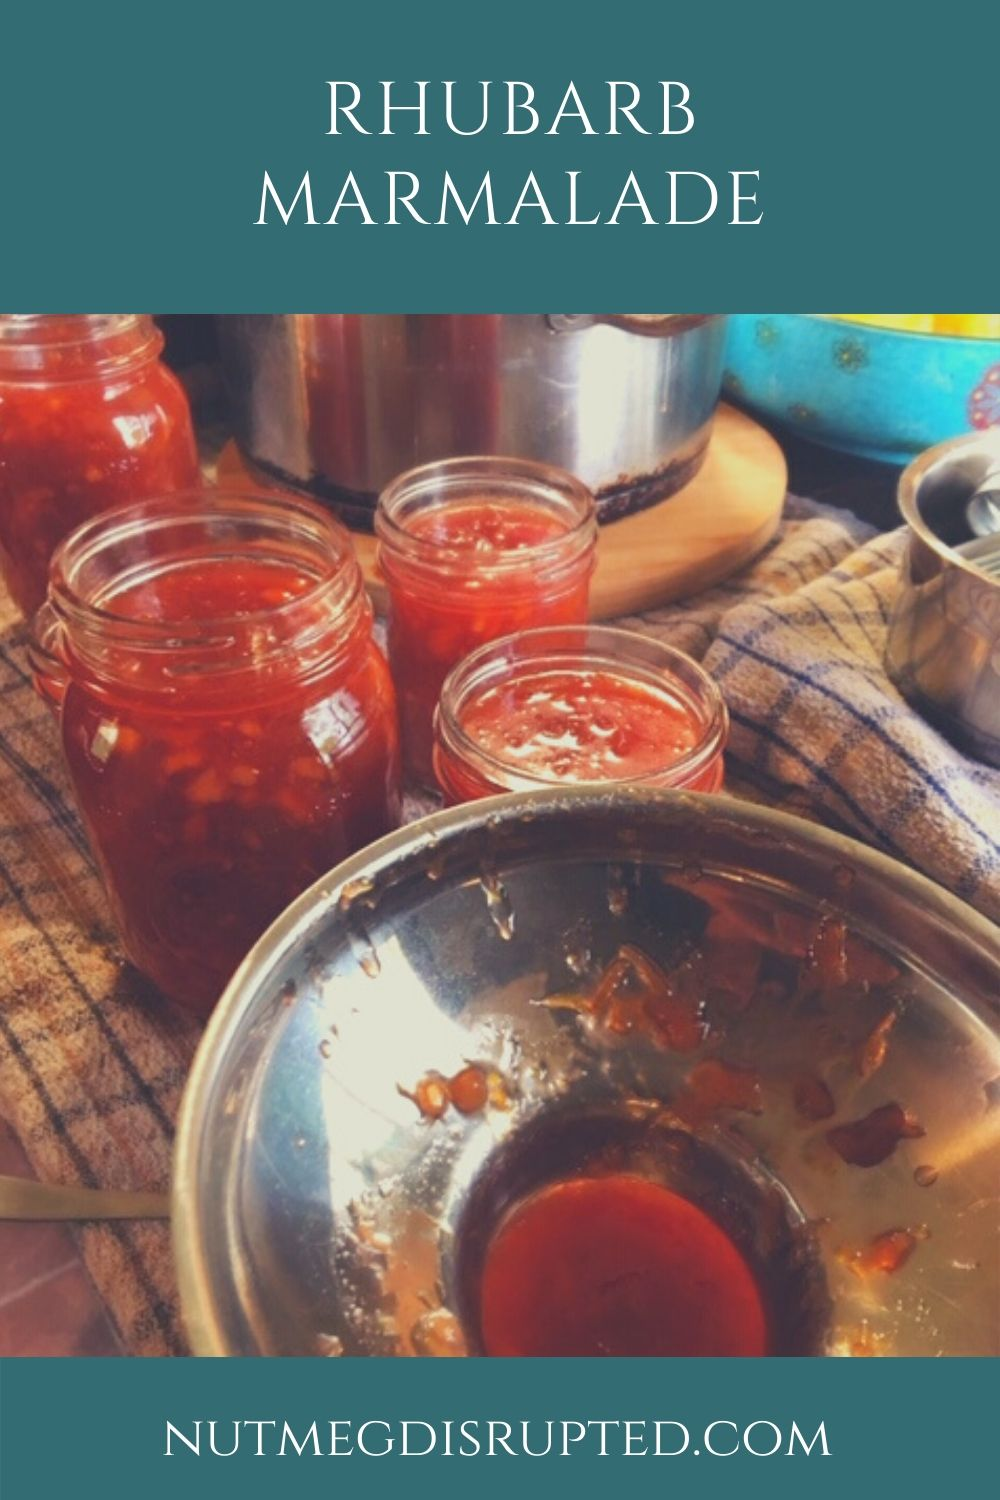 Rhubarb Marmalade from Nutmeg Disrupted